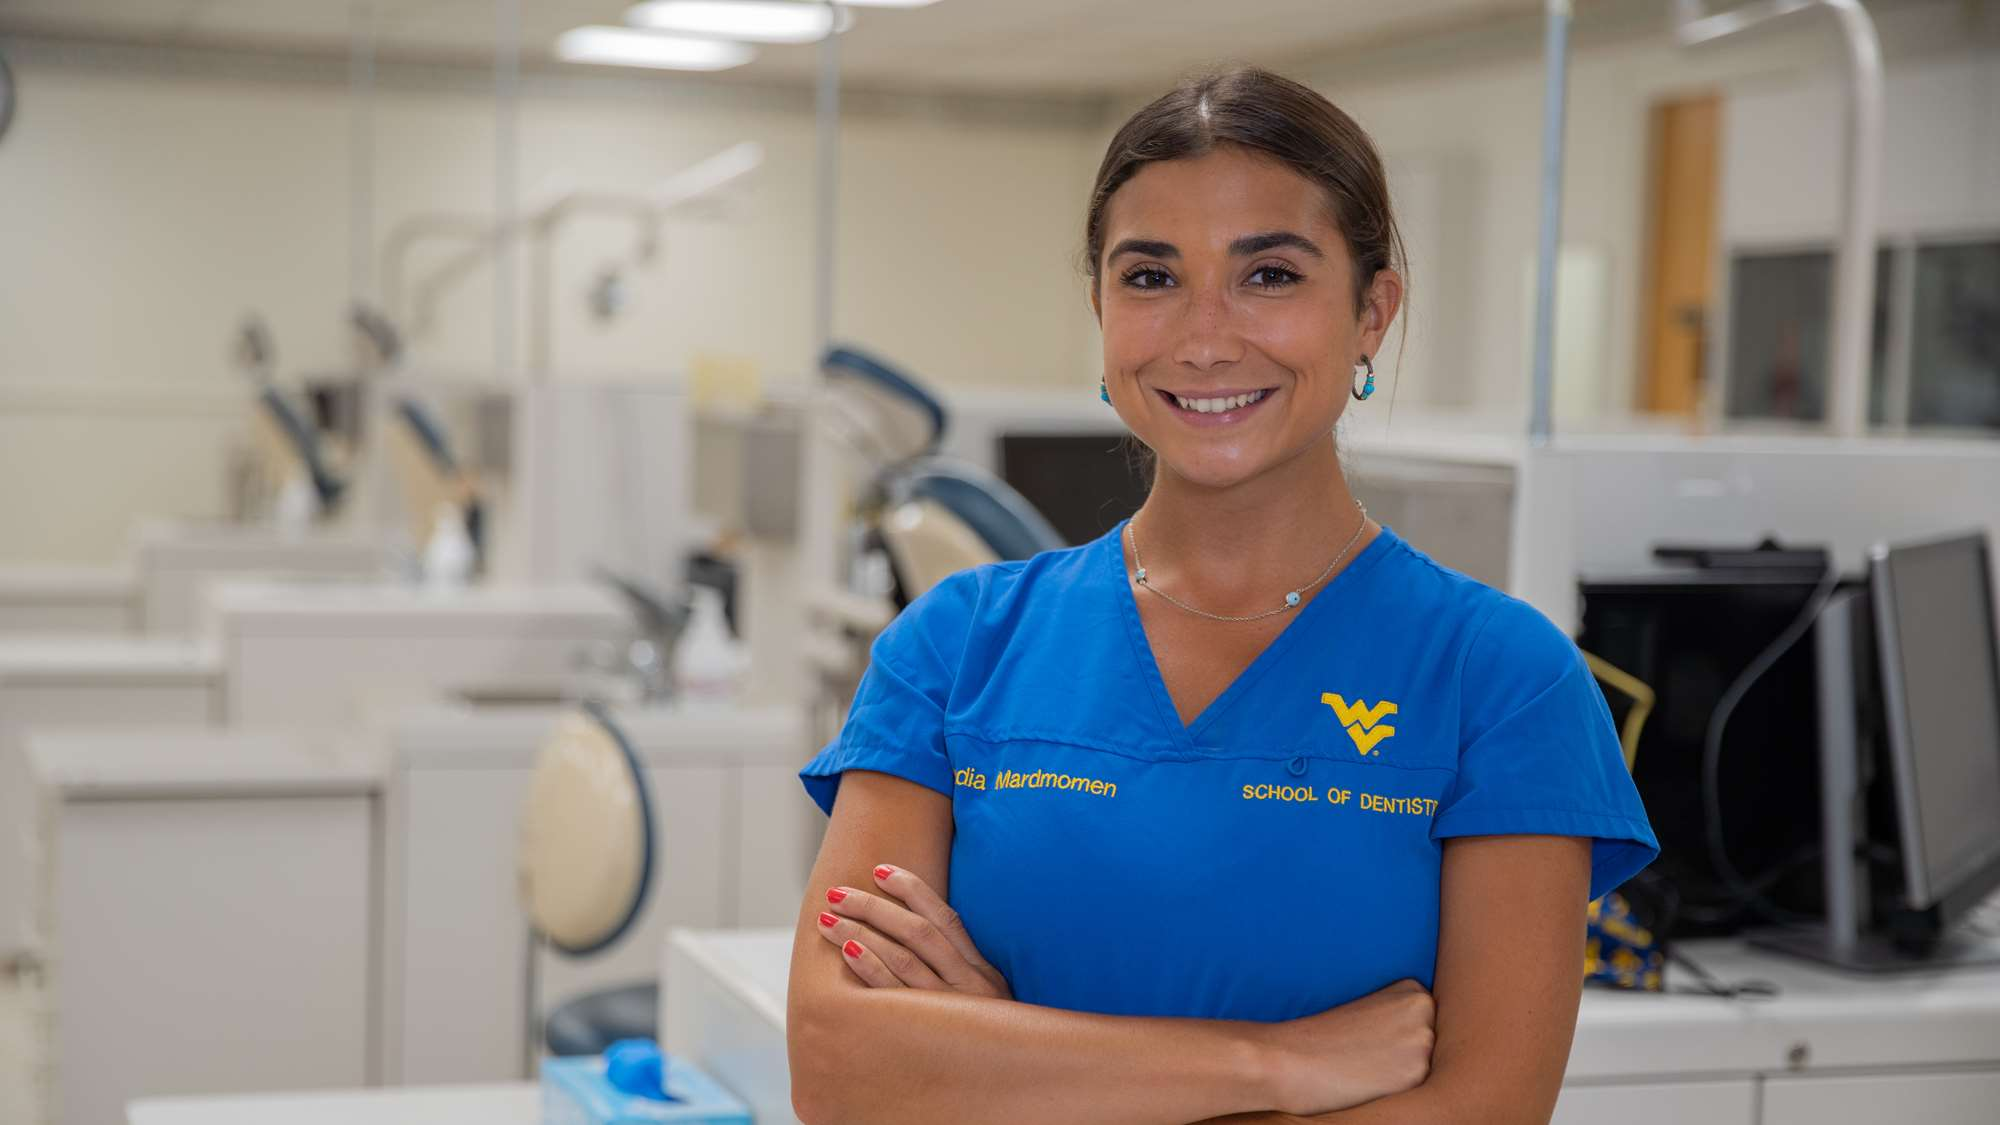 Nadia Mardmomen smiles in clinic as she talks about her path through dental school.